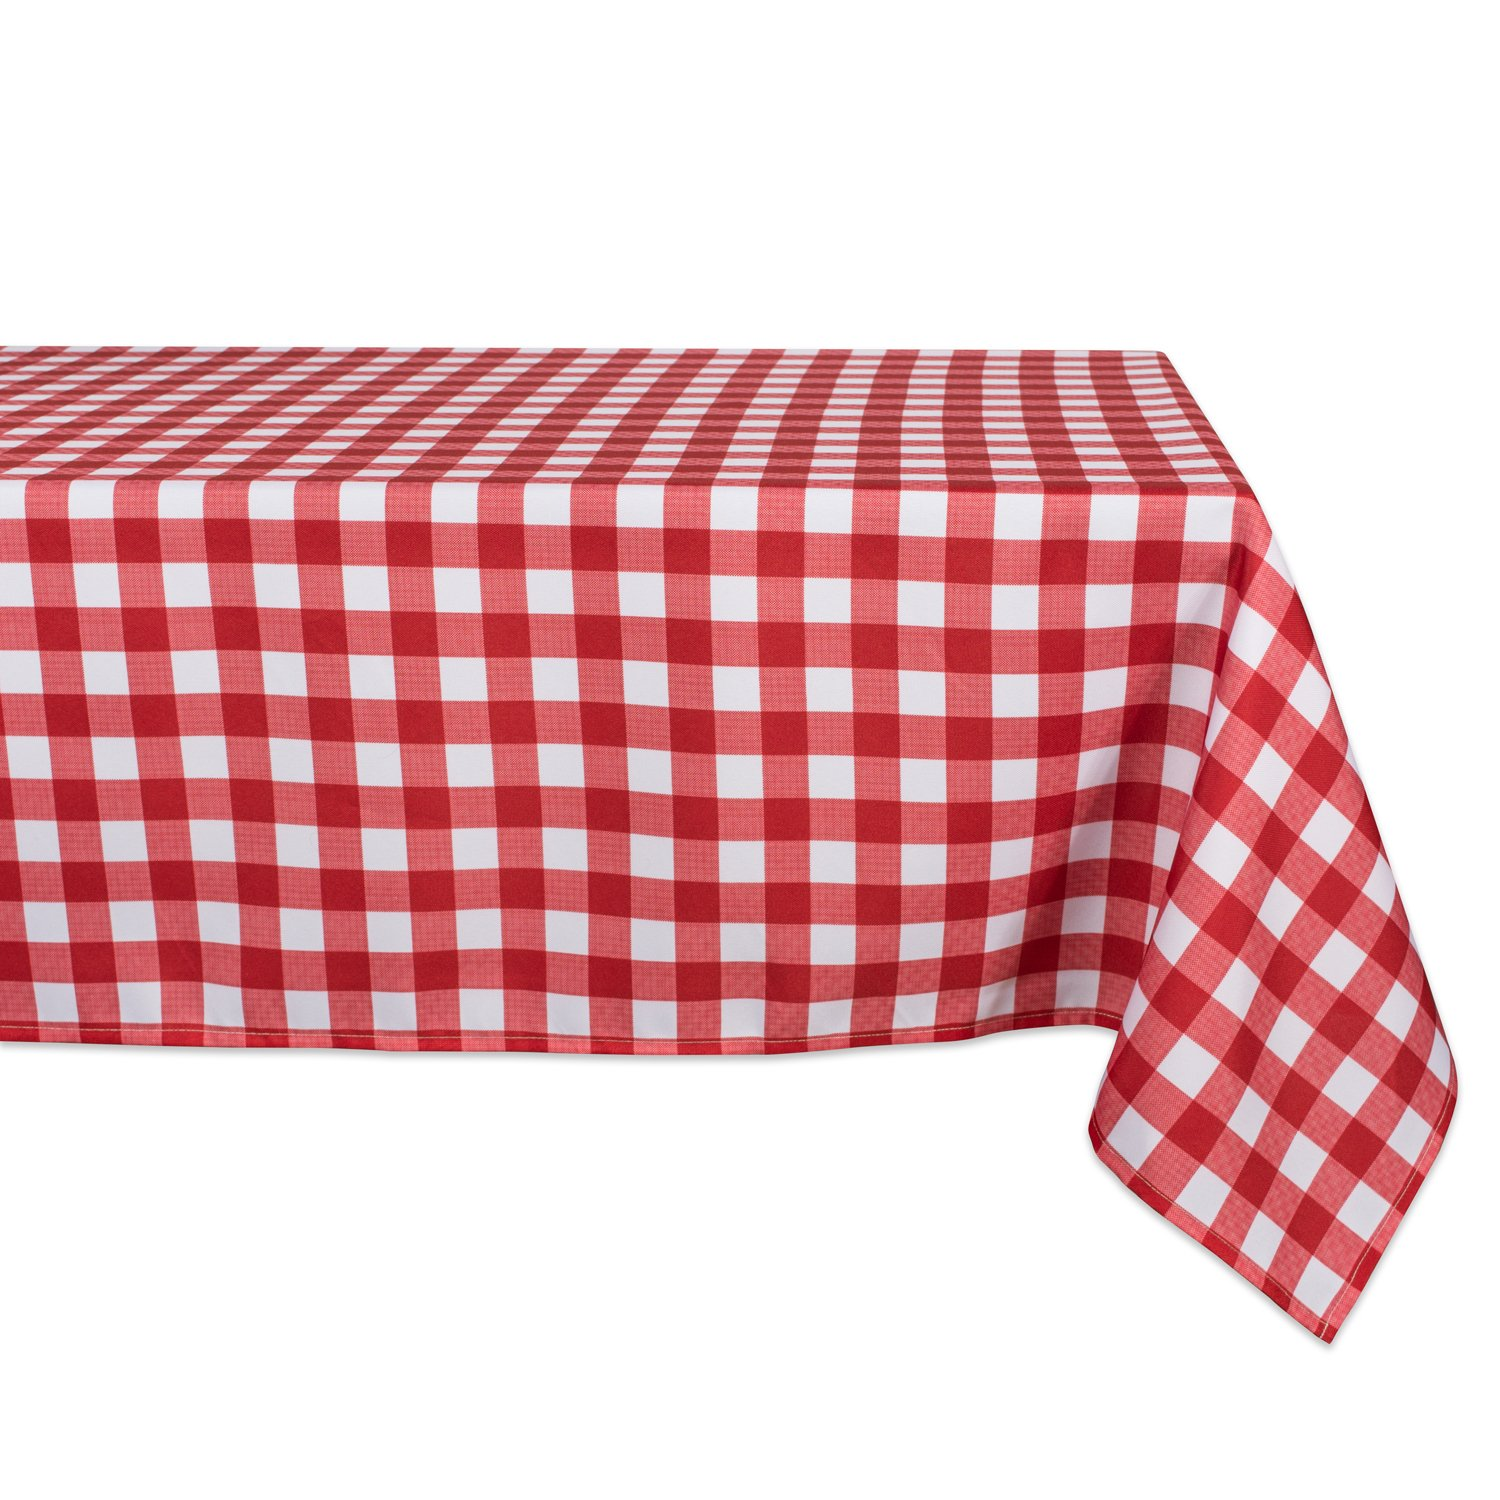 DII 100% Polyester, Spill Proof, Machine Washable, Tablecloth for Outdoor Use, 60x120 Round, Red Check, Seats 10 to 12 People